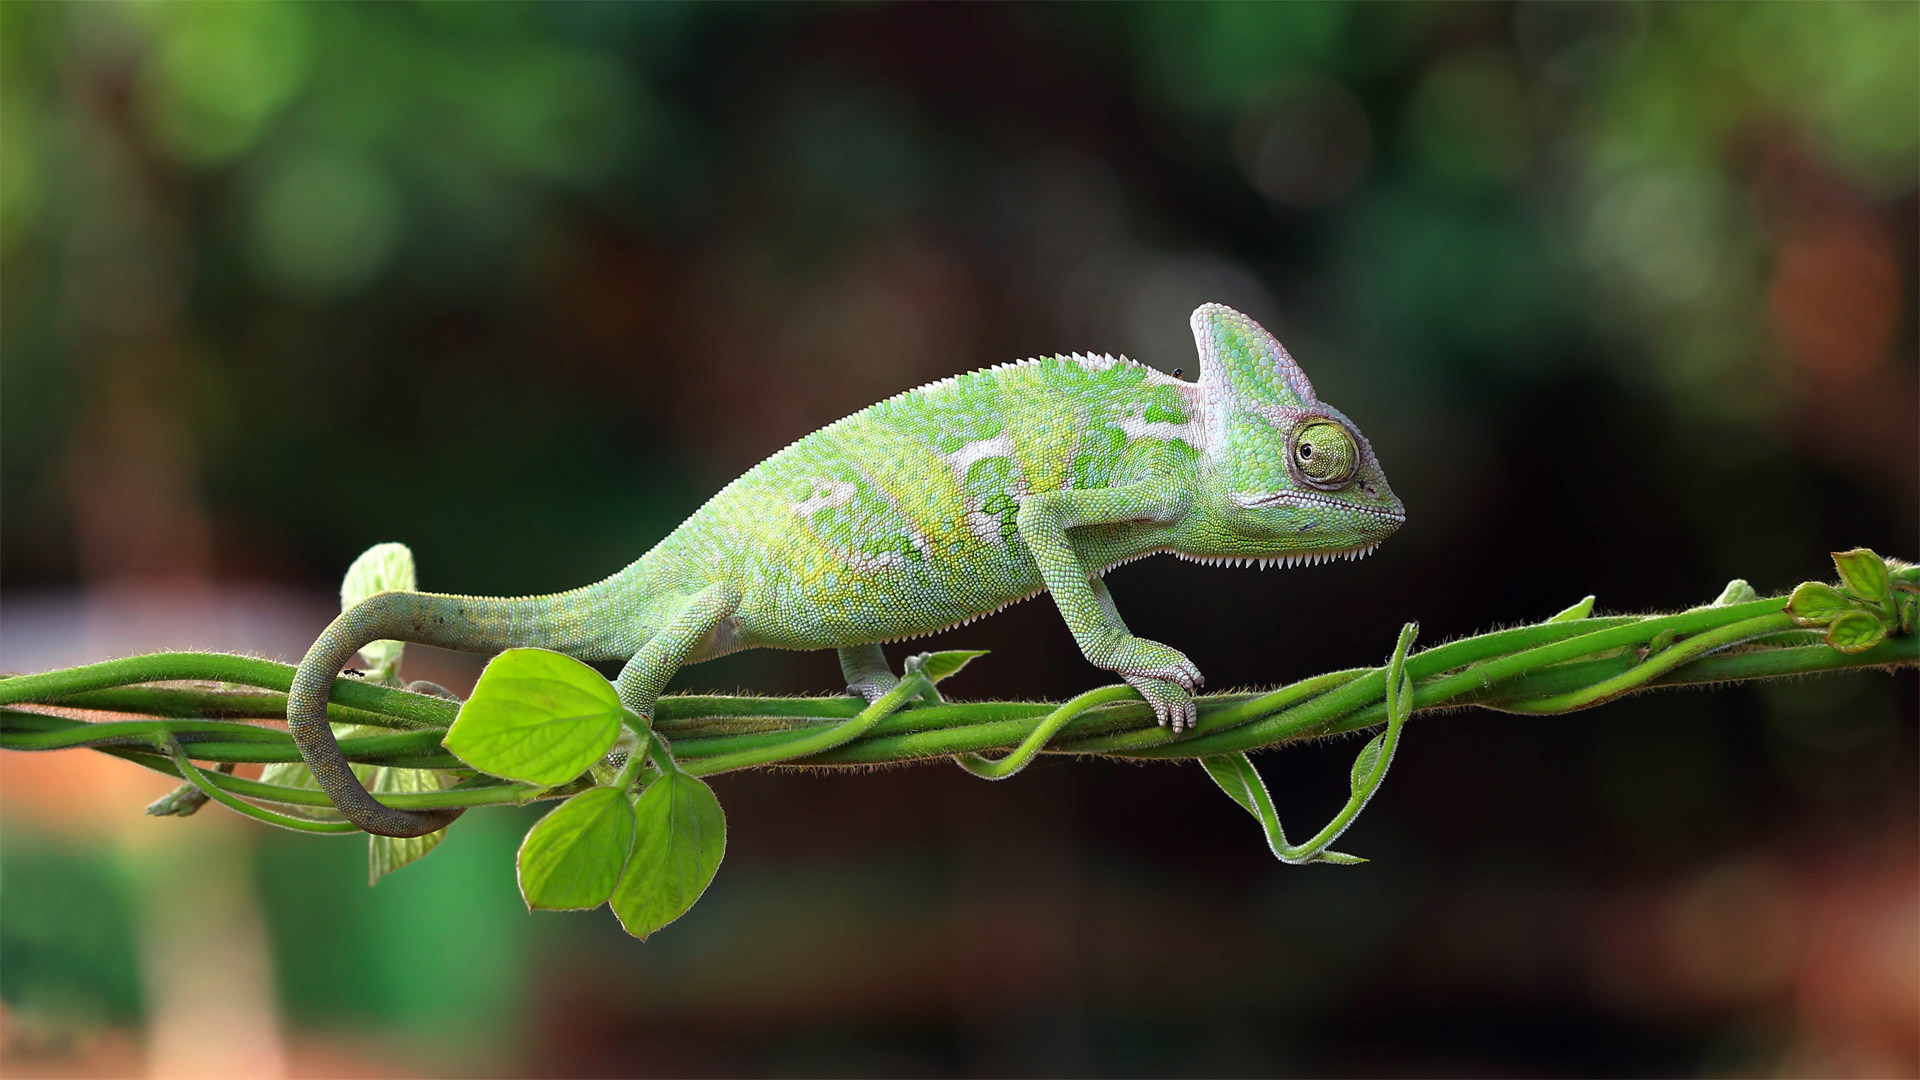 Chameleon walking on a plant, Indonesia (© SnapRapid/Offset by Shutterstock)